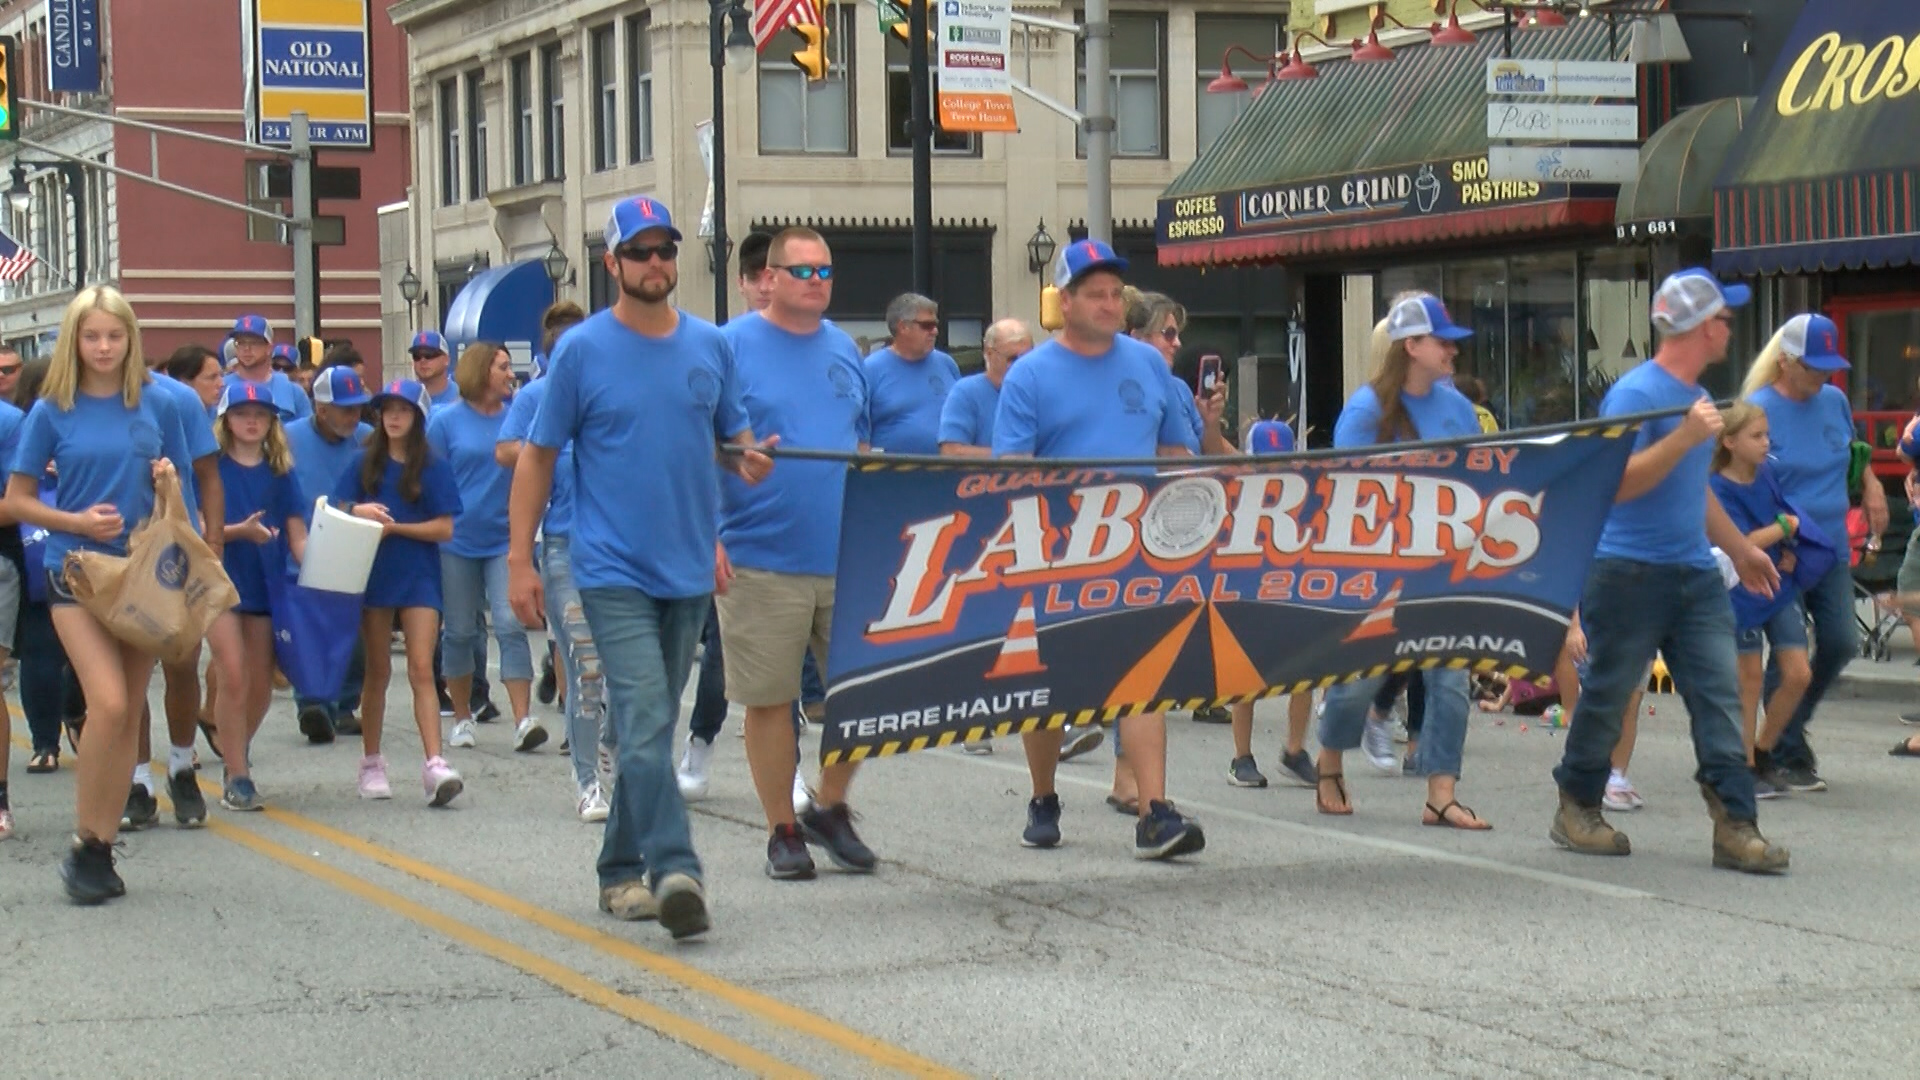 Terre Haute Christmas Parade 2020 Terre Haute's 39th Labor Day Parade canceled for 2020